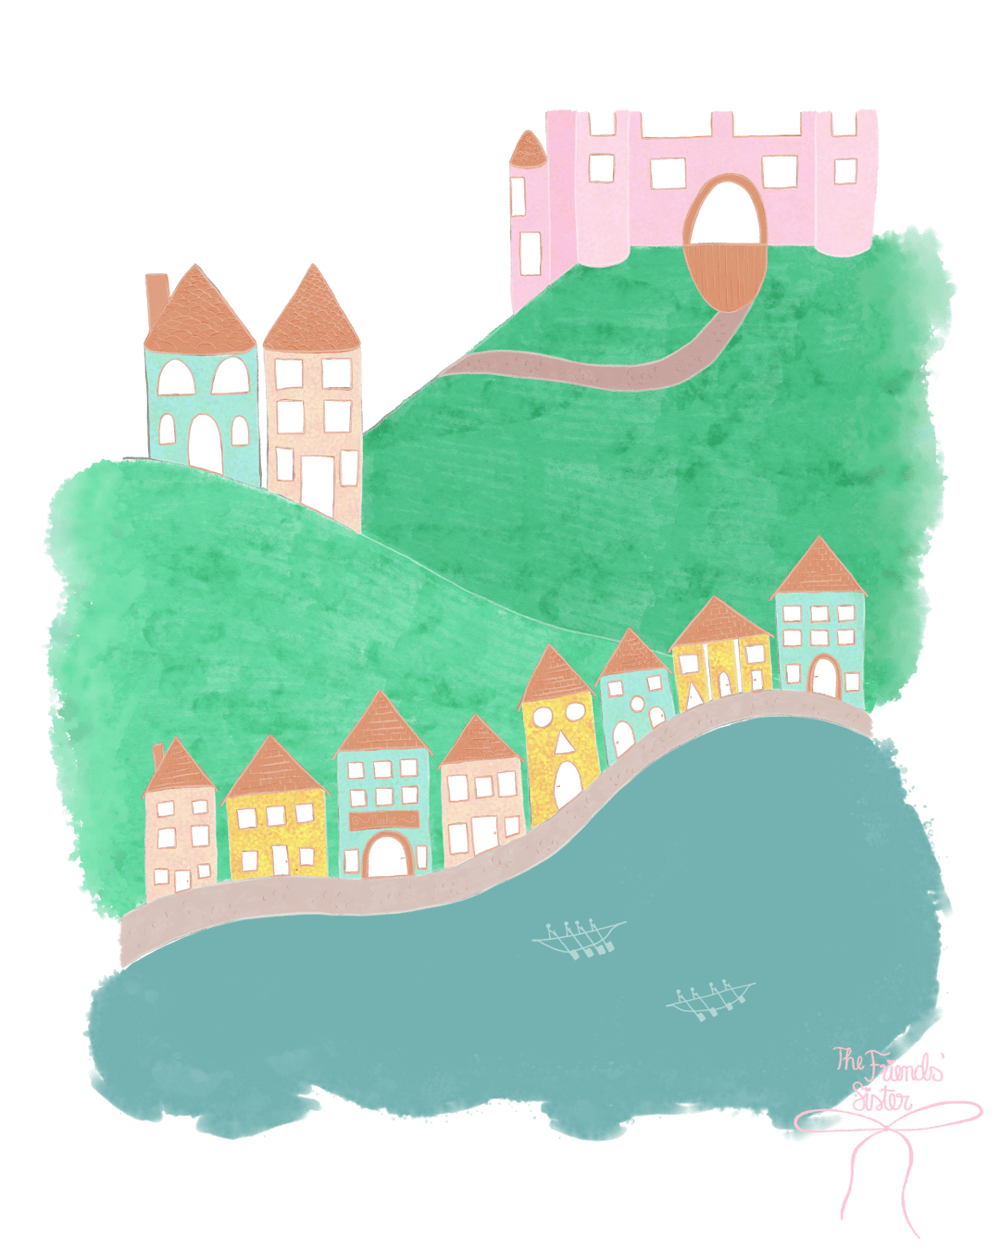 Storybook Illustration in Adobe Fresco - image 2 - student project